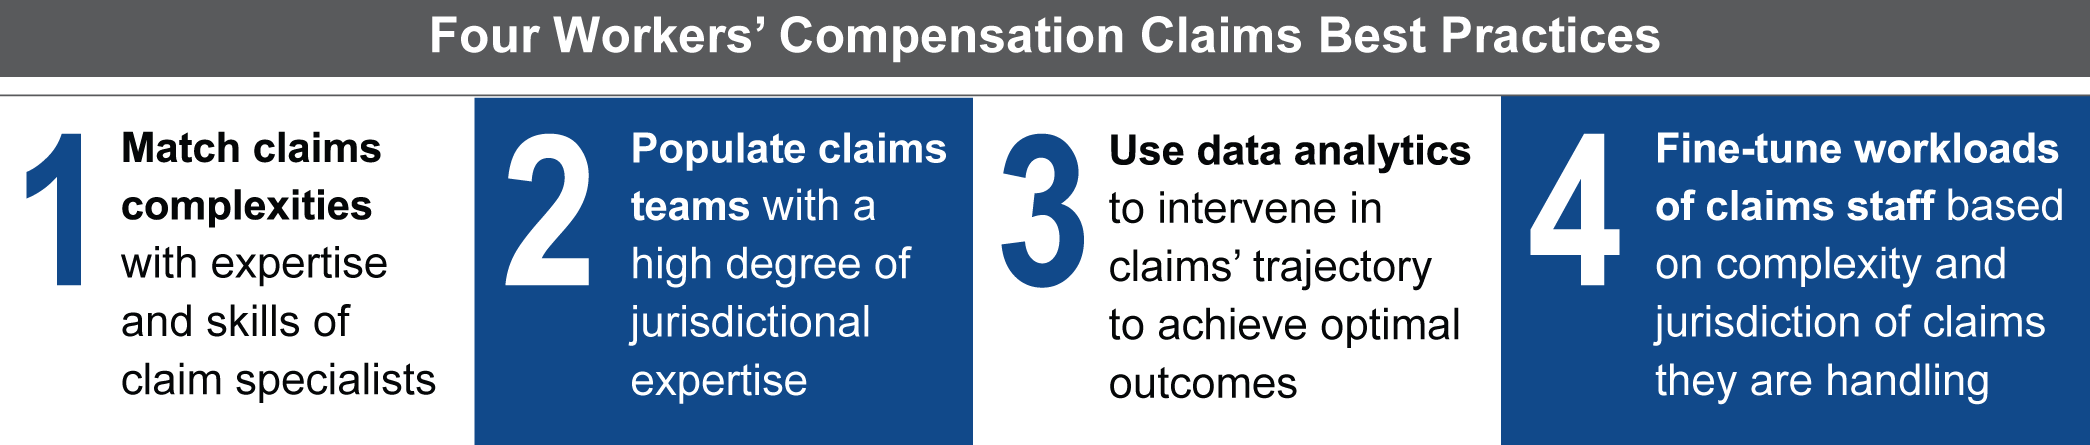 A table showing 4     best practices for managing workers' compensation claims.